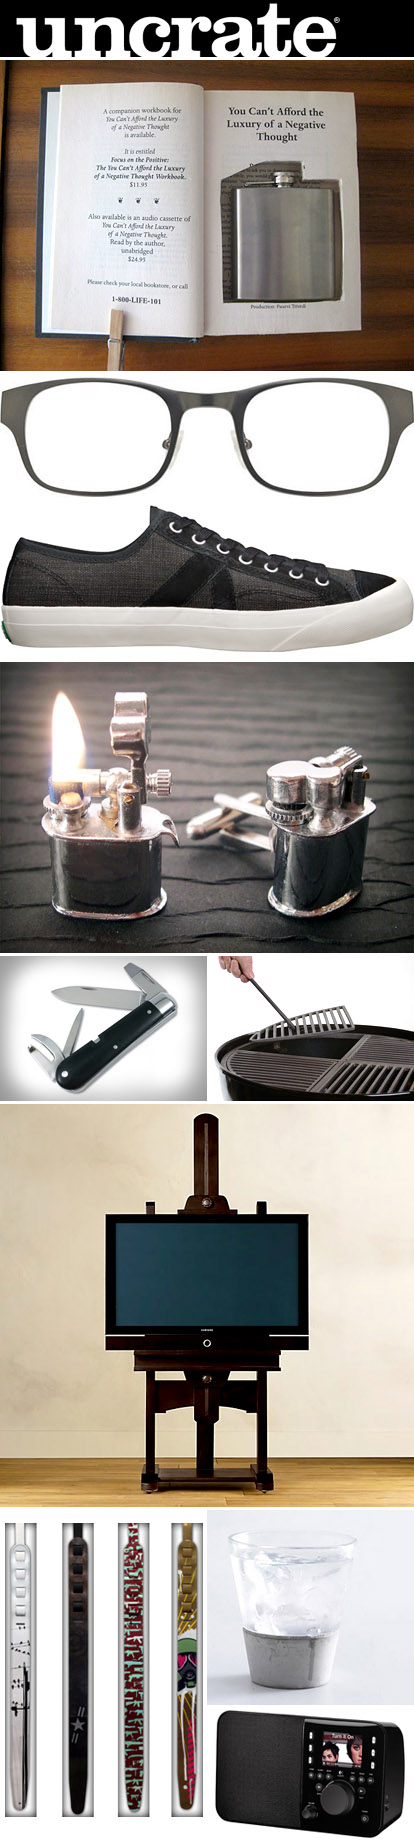 gifts for grooms and groomsmen from Uncrate.com, vintage cuff links, hollow book safes, men's fashion, grill and bar accessories